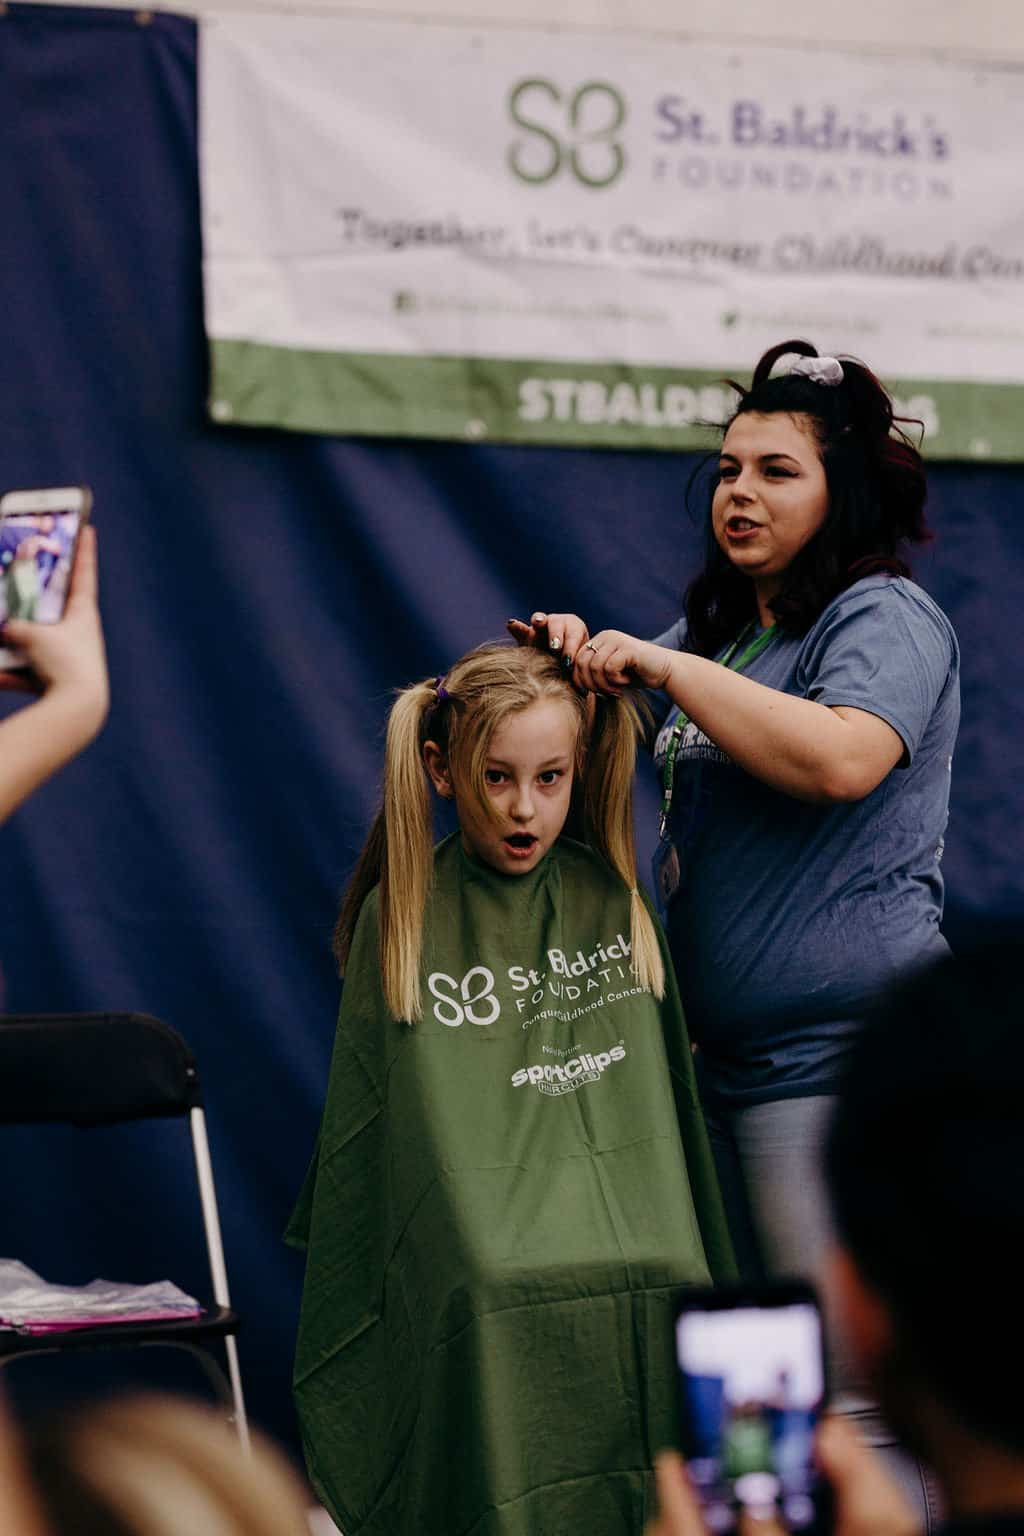 St. Baldricks | I bet you wouldn't shave your head 178